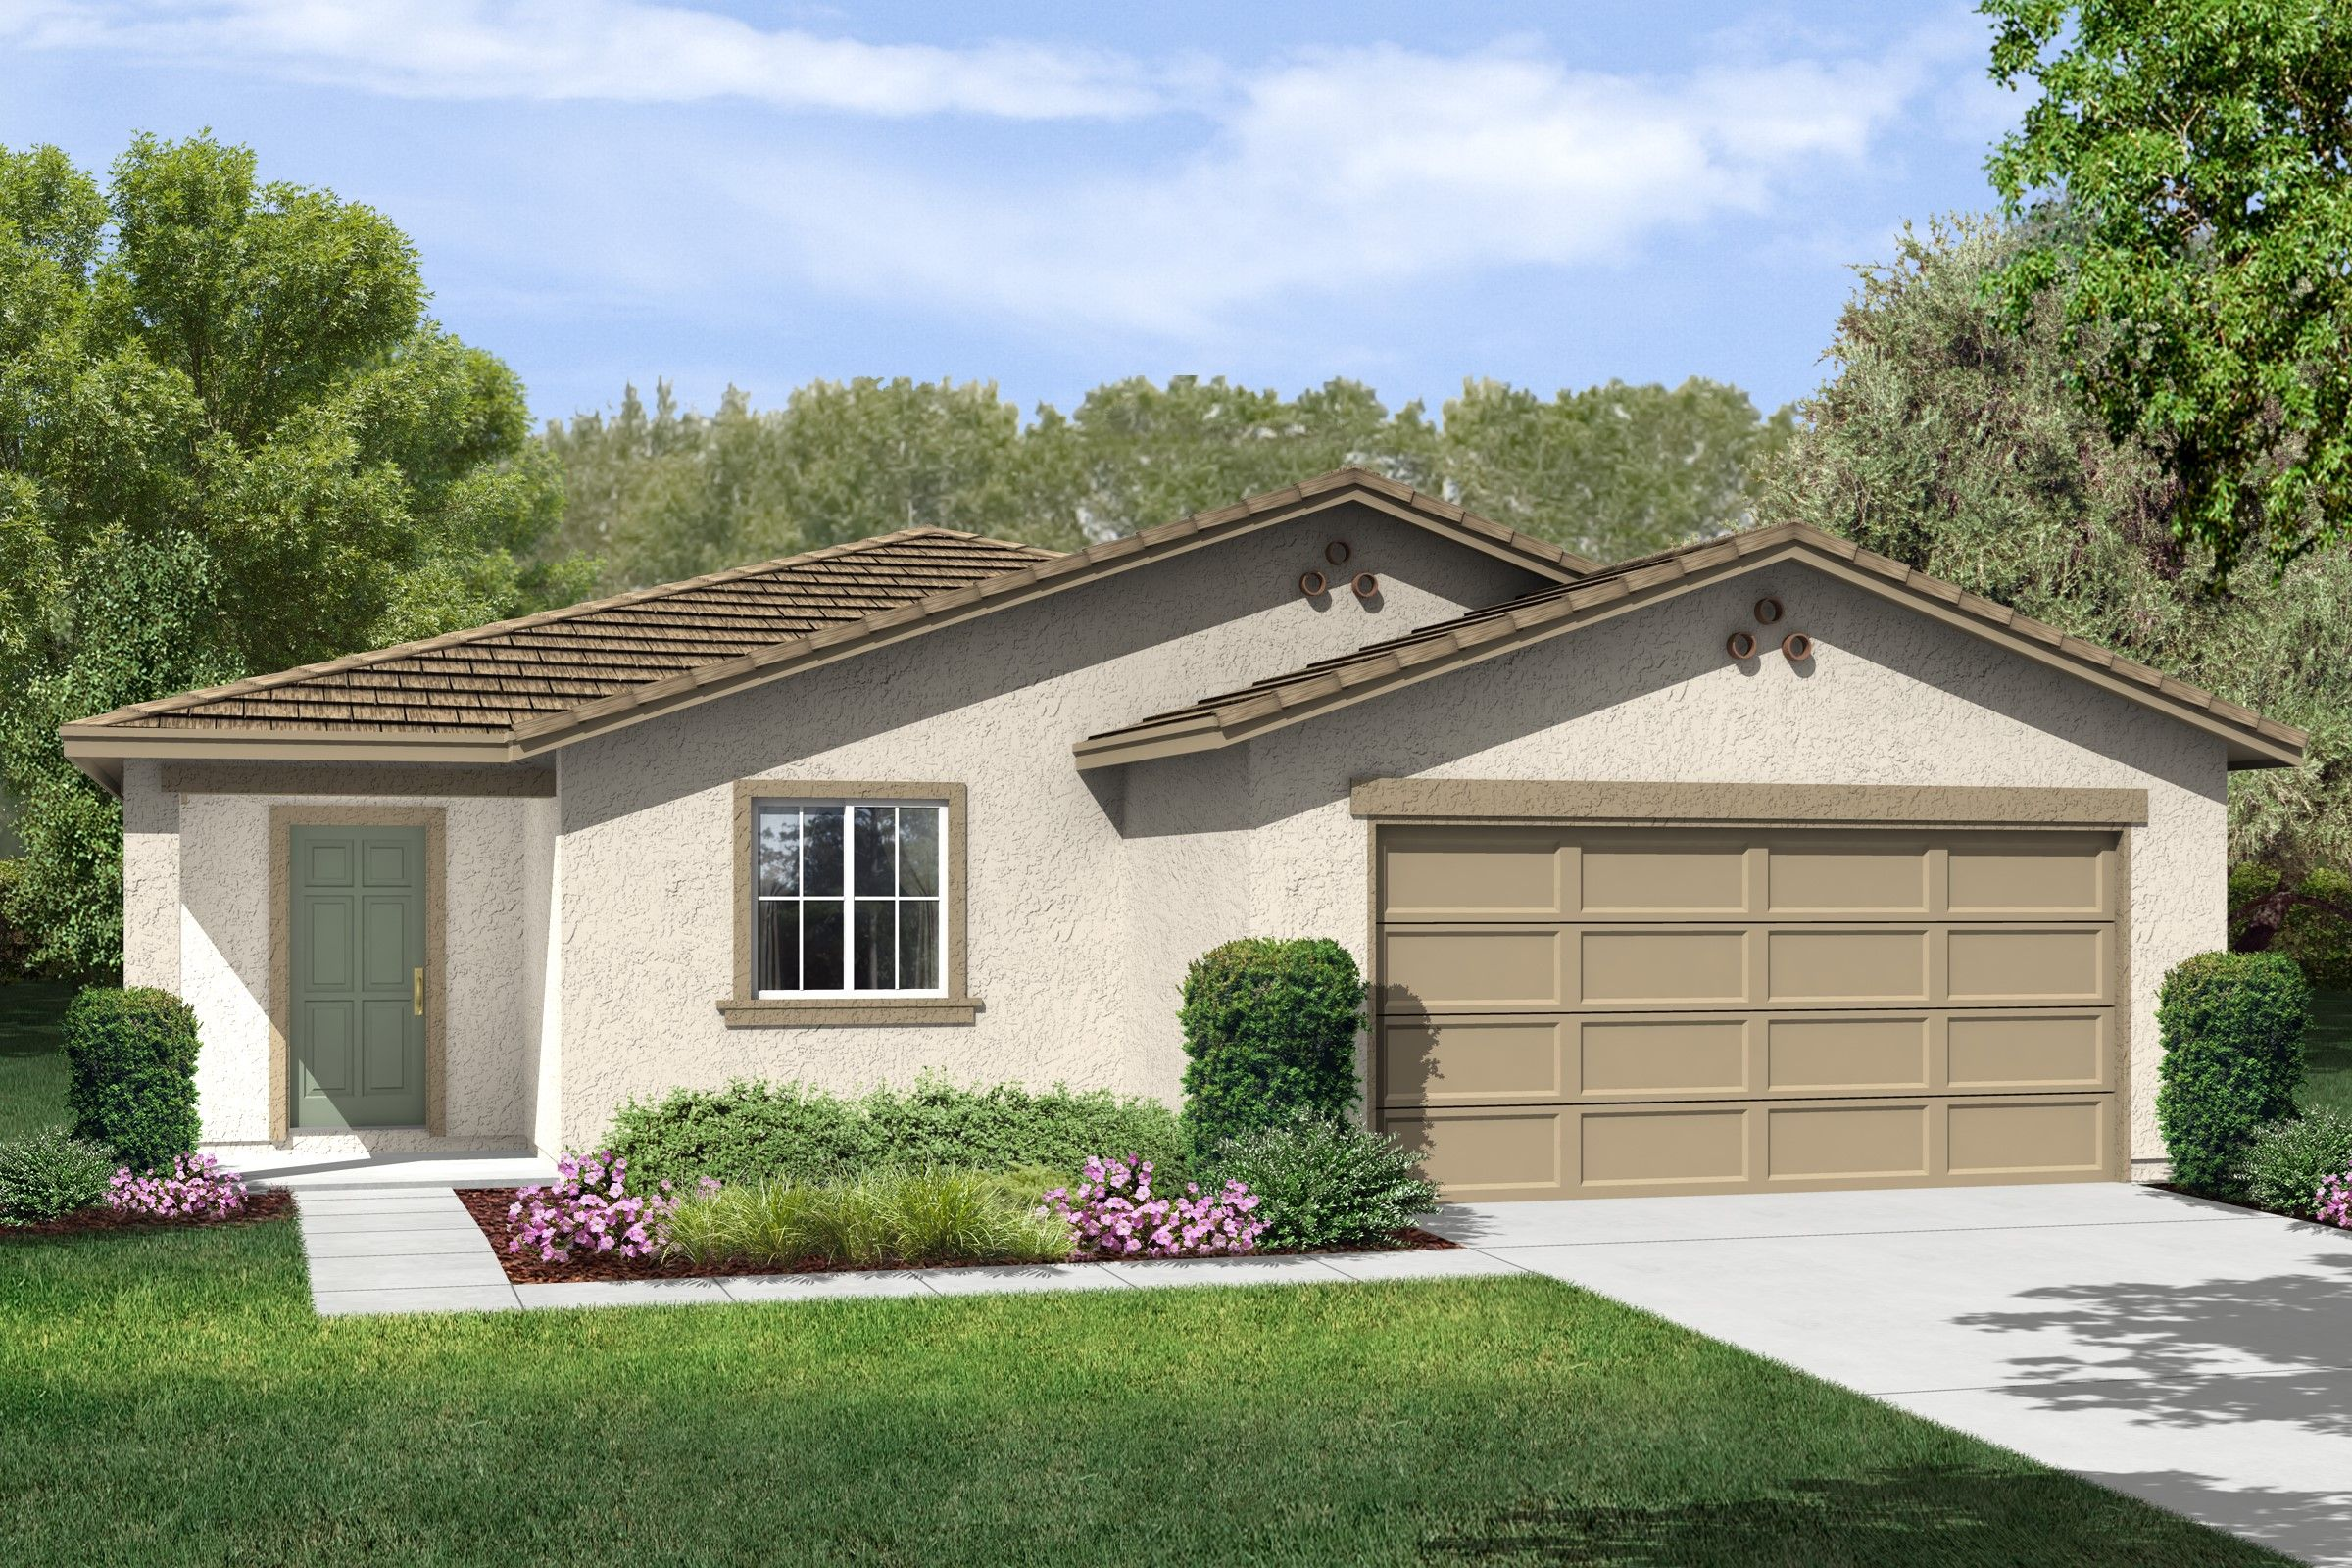 Single Family for Sale at Aspire - Estrella 2101 Rayo Del Luna Drive Arvin, California 93203 United States